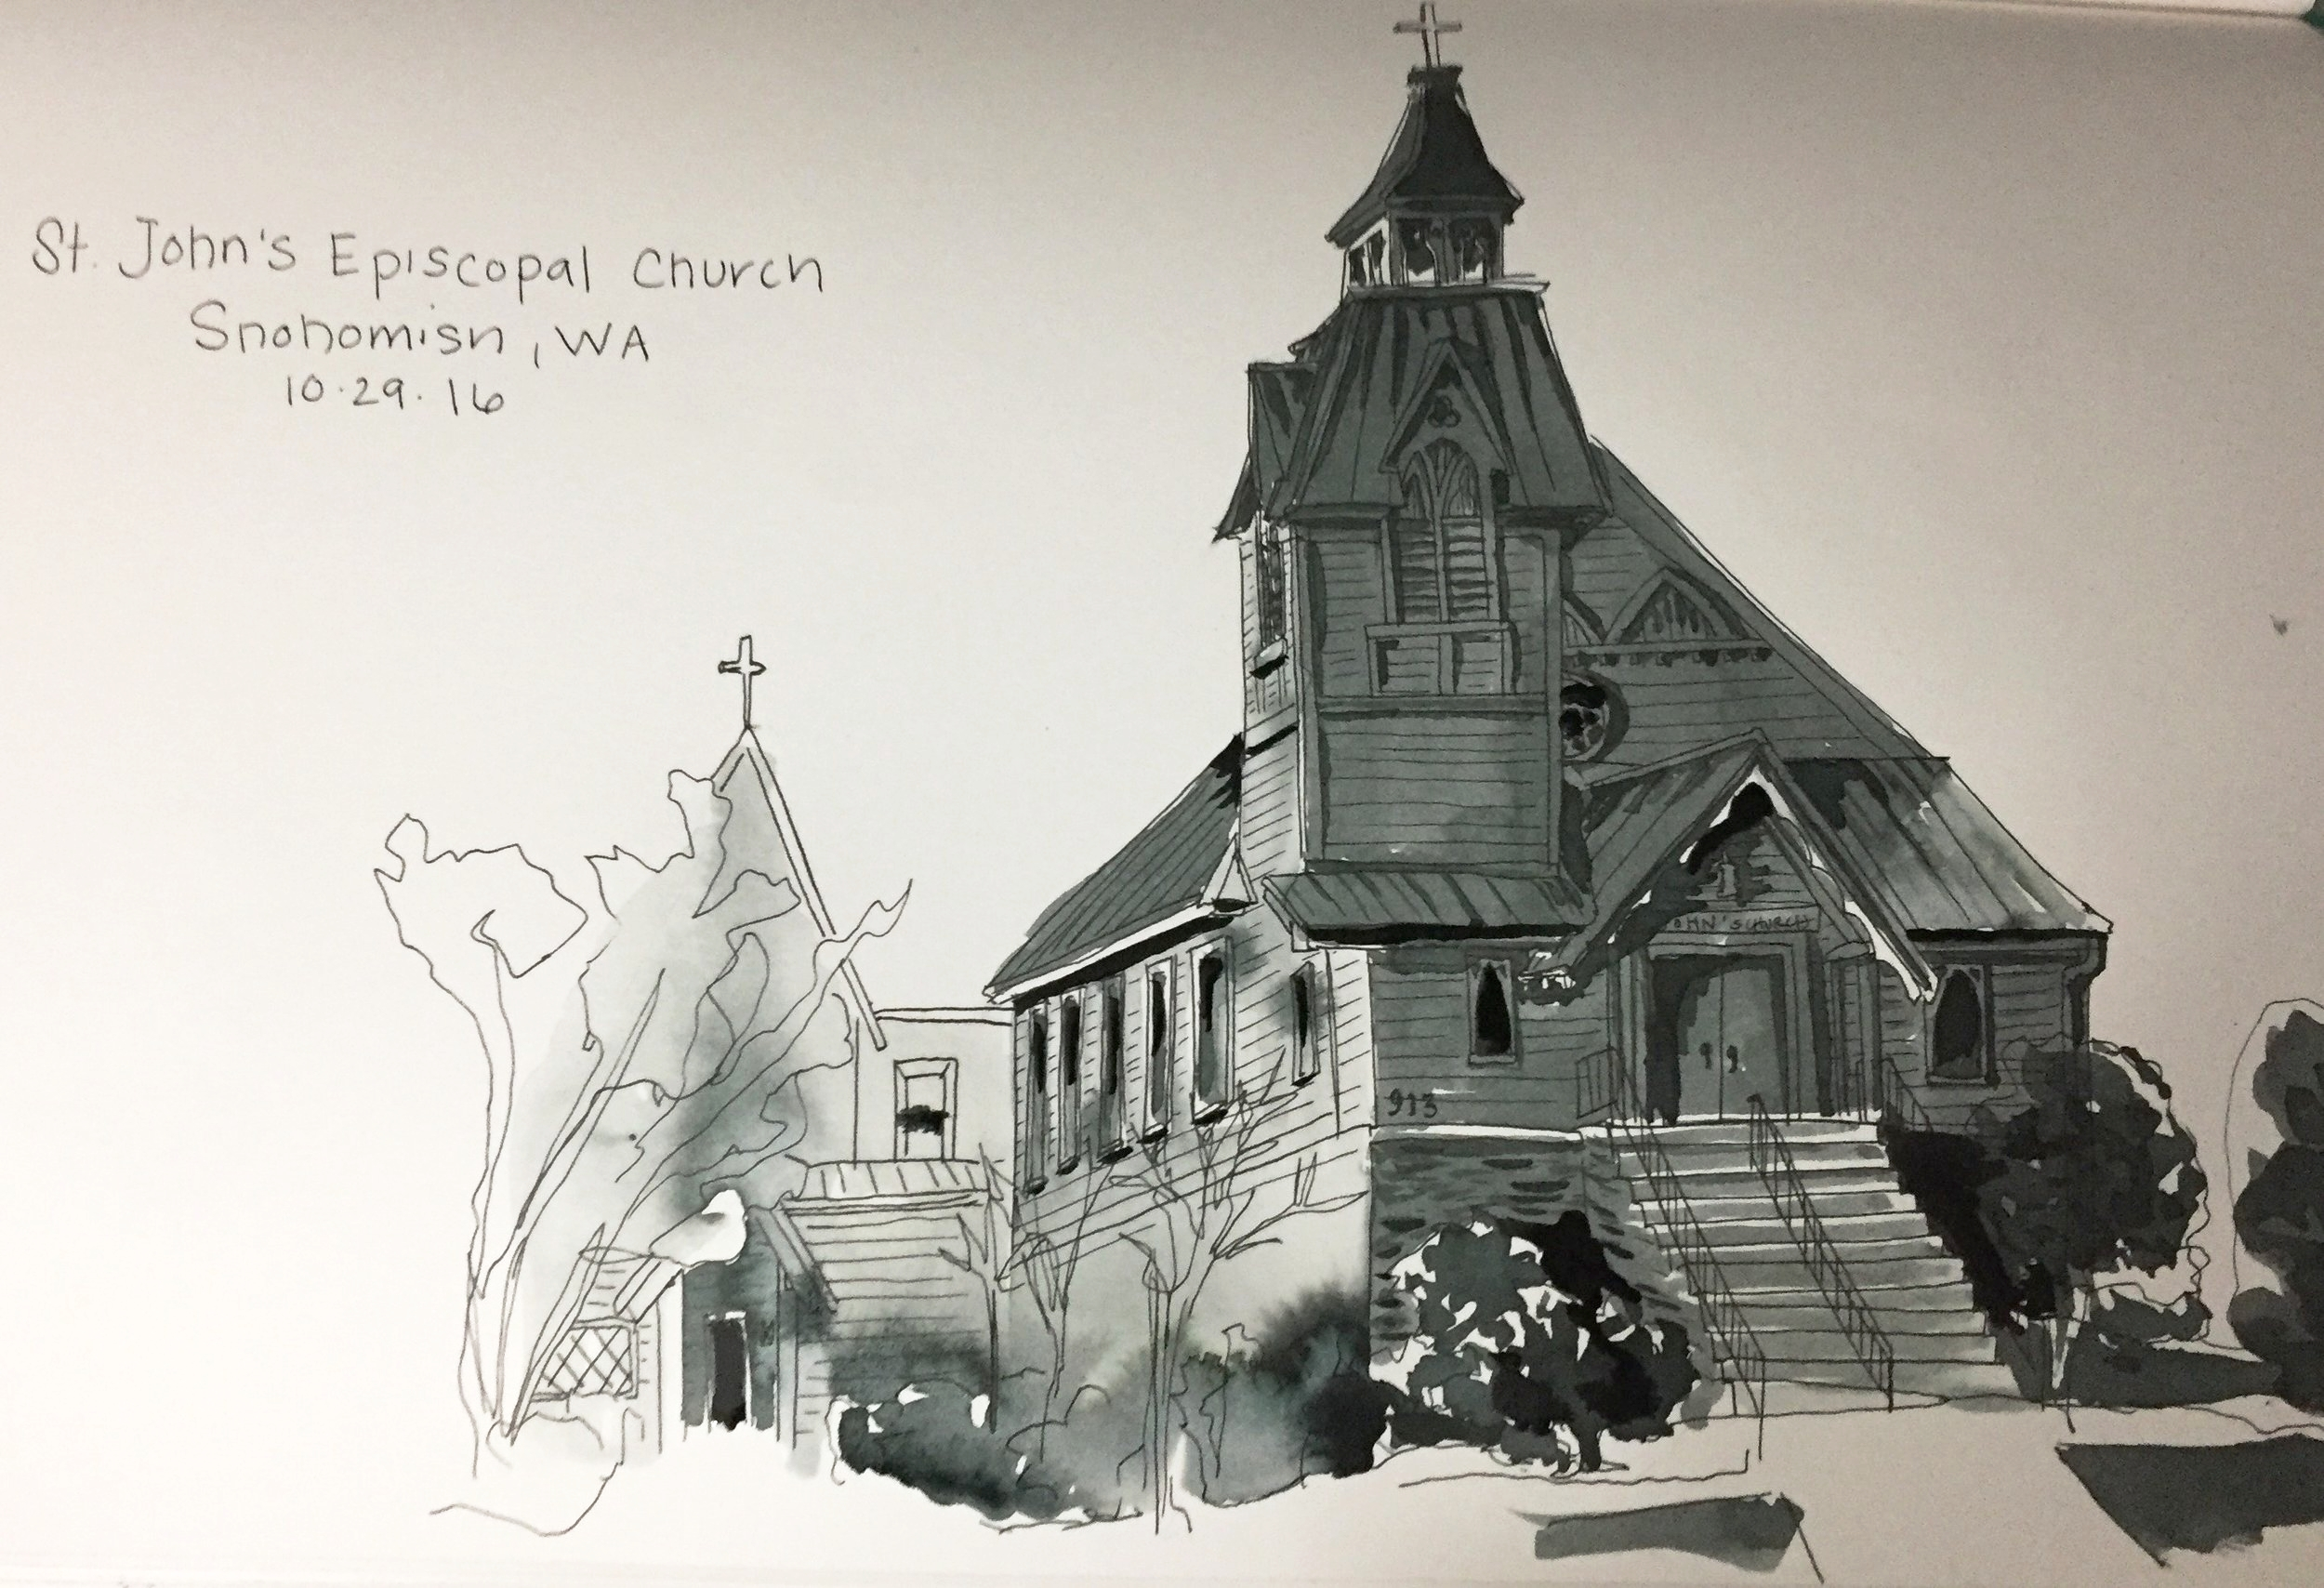 Sketch by Emily Brown